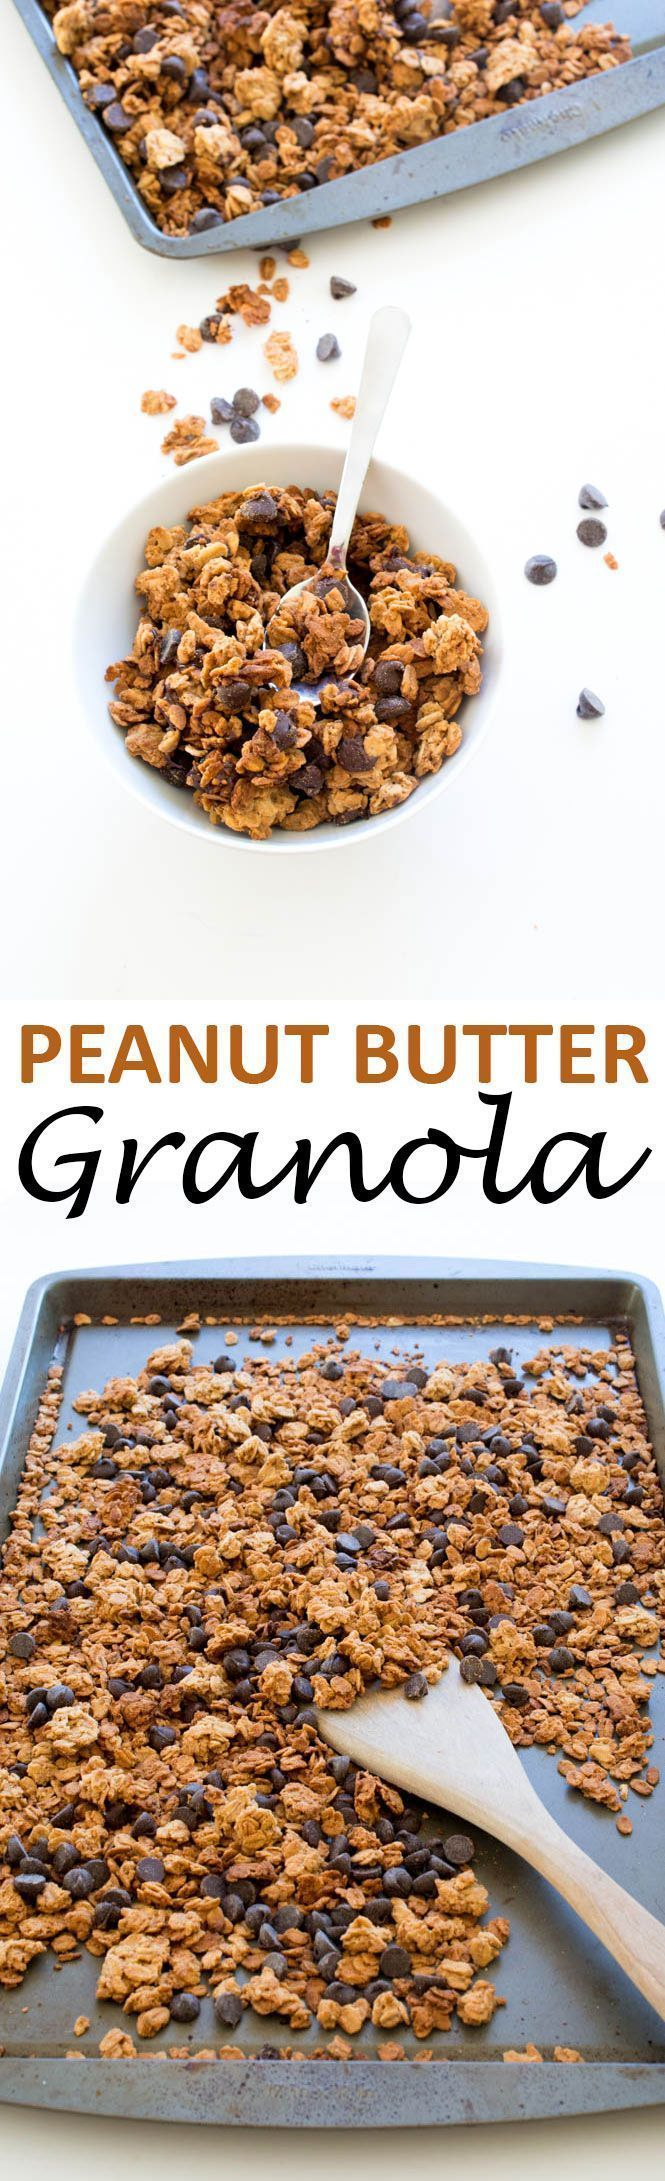 4 Ingredient Super Easy Peanut Butter Chocolate Chip Granola. This granola takes less than 20 minutes to make. A great healthy snack or breakfast!